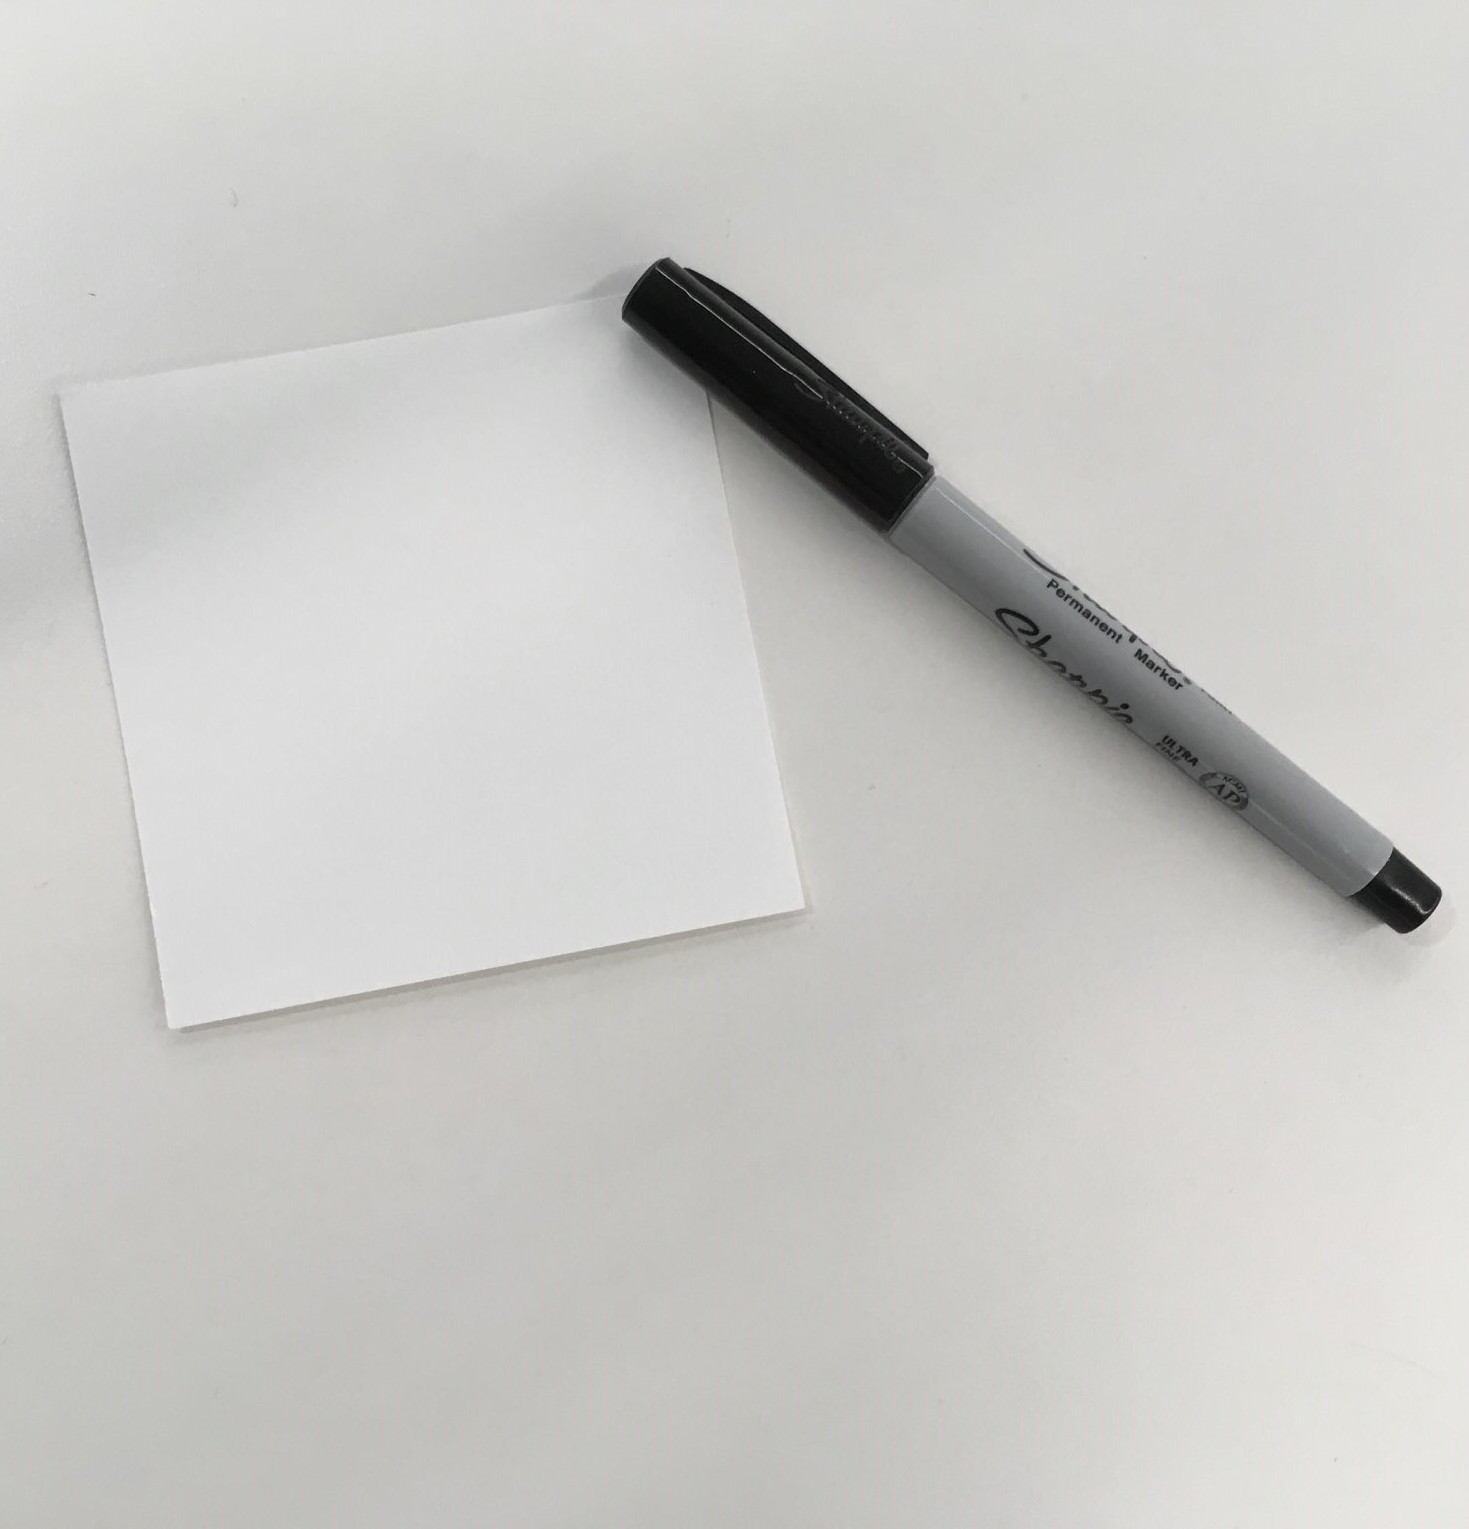 Blank square of paper with marker.